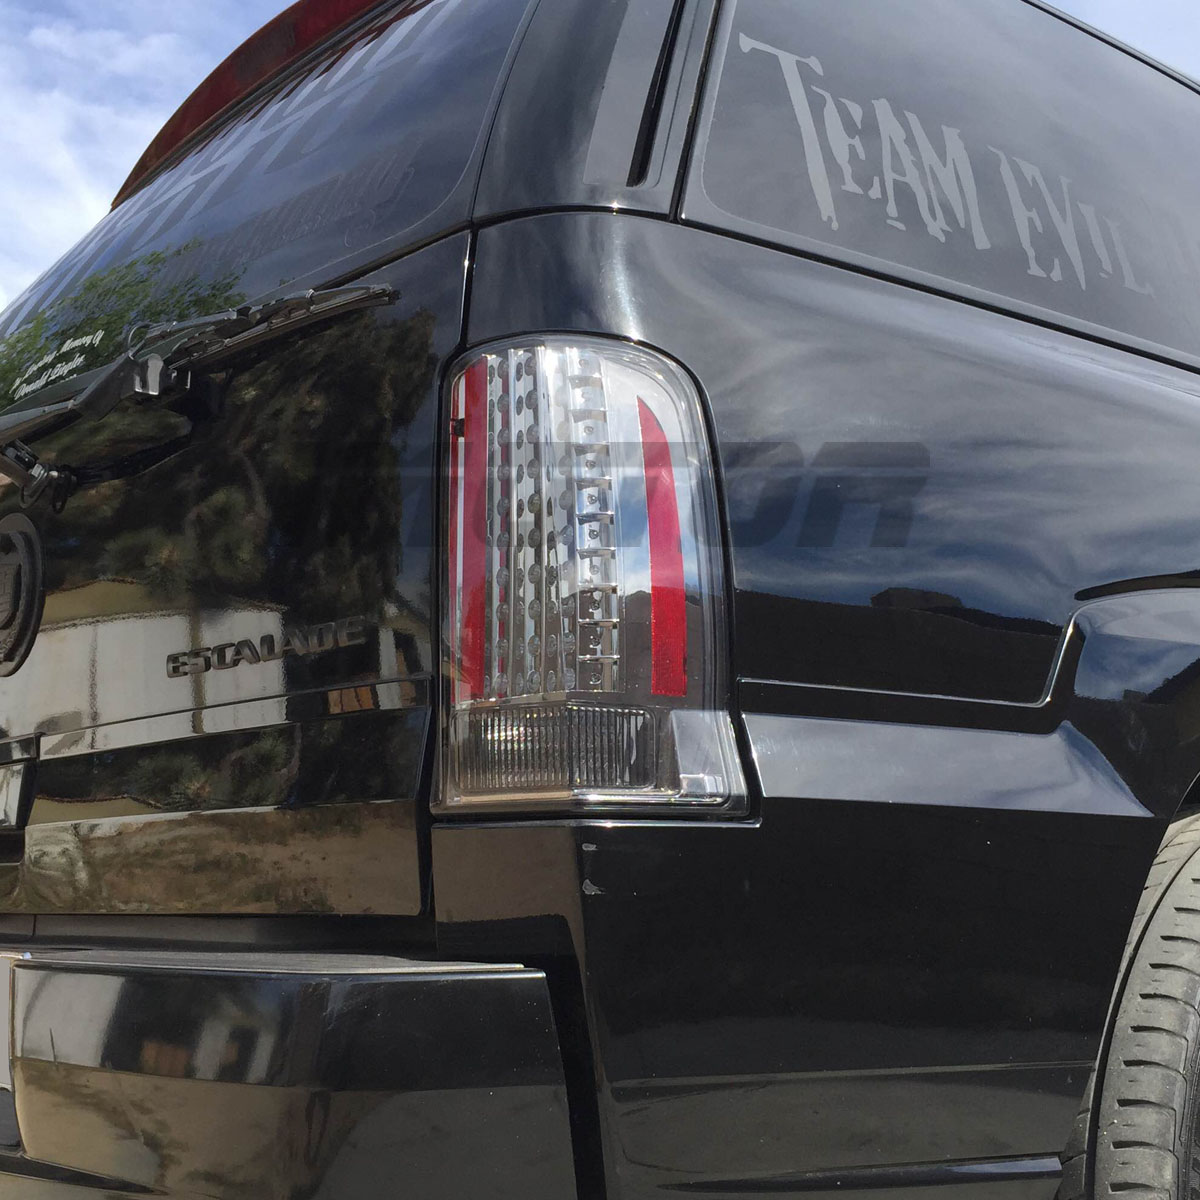 Escalade Ext For Sale >> 2002 2003 2004 2005 2006 Cadillac Escalade Smoke Tint LED ...